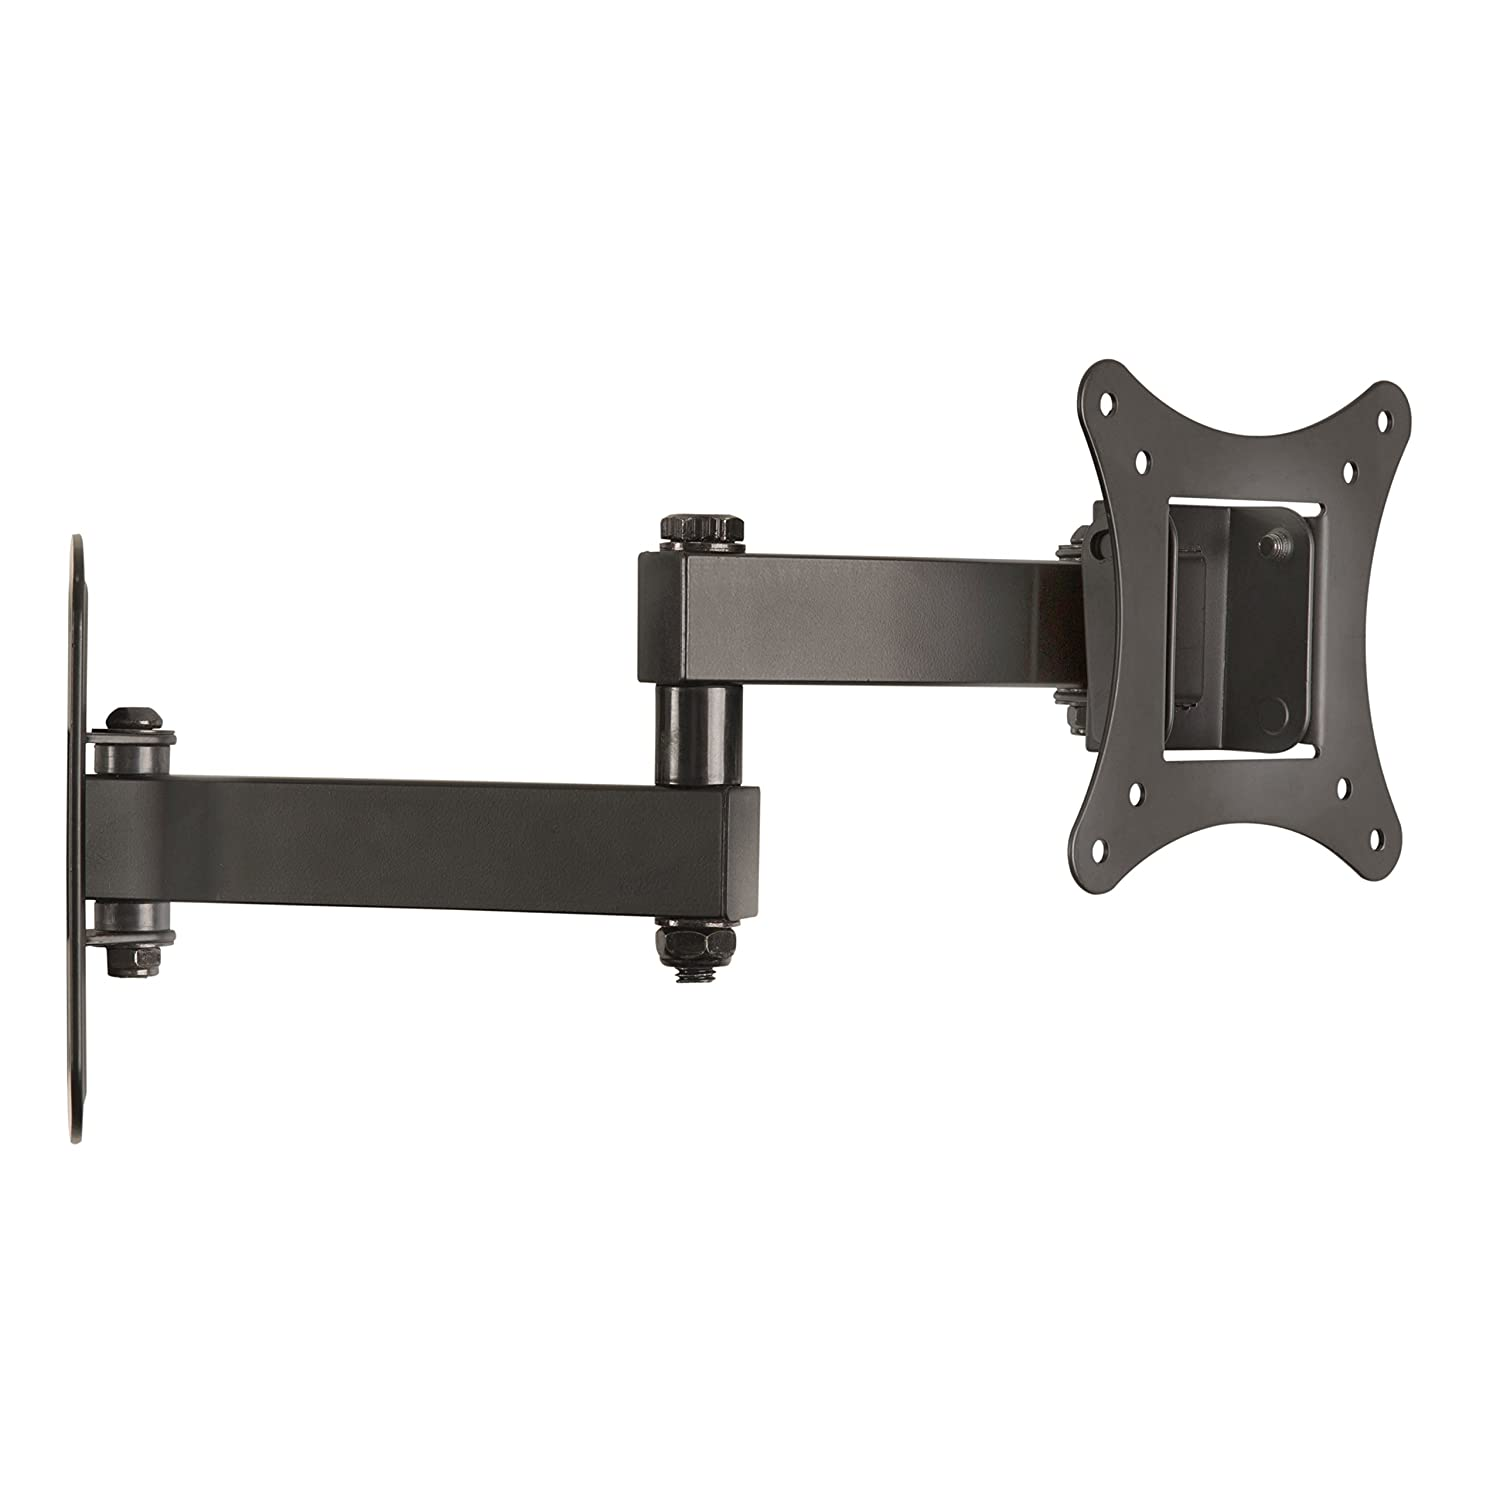 Installerparts 10 25 Tv Wall Mount Full Motion Gjm Guitars Design And Build High Quality Electric Swivel 124 Tilt Articulating Extension Arm Lcd Led Monitor Flat Panel Screen Vesa